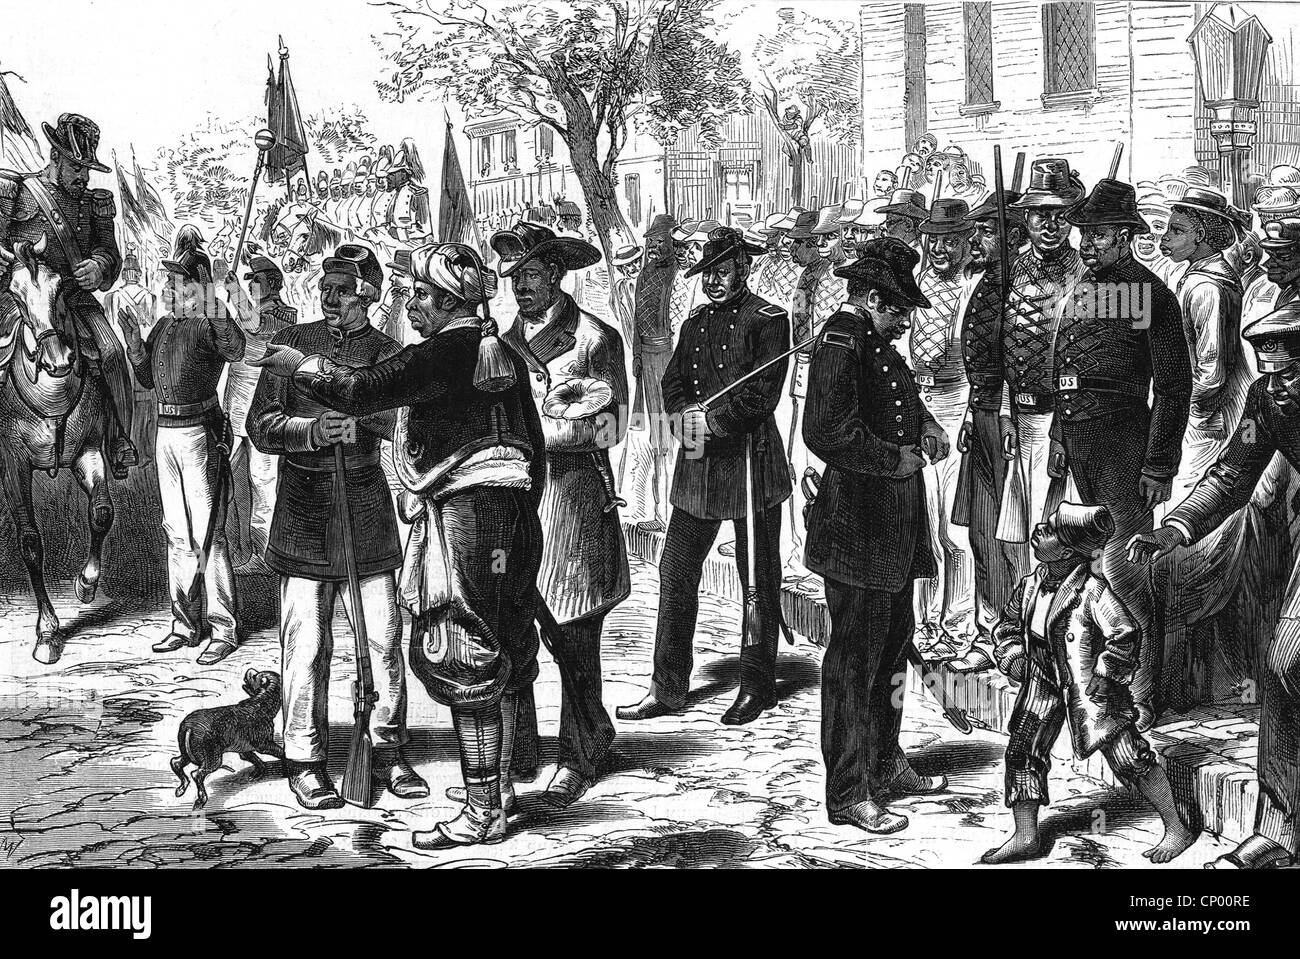 a congress debate in 1850 regarding the abolition of slave trade Known as the compromise of 1850, clay ' s proposals became the source for the most famous congressional debate in us history, and although the various speeches centered on different aspects of the slavery question, the debate was really about the political importance of the west and who would decide its future clay was the first to defend.